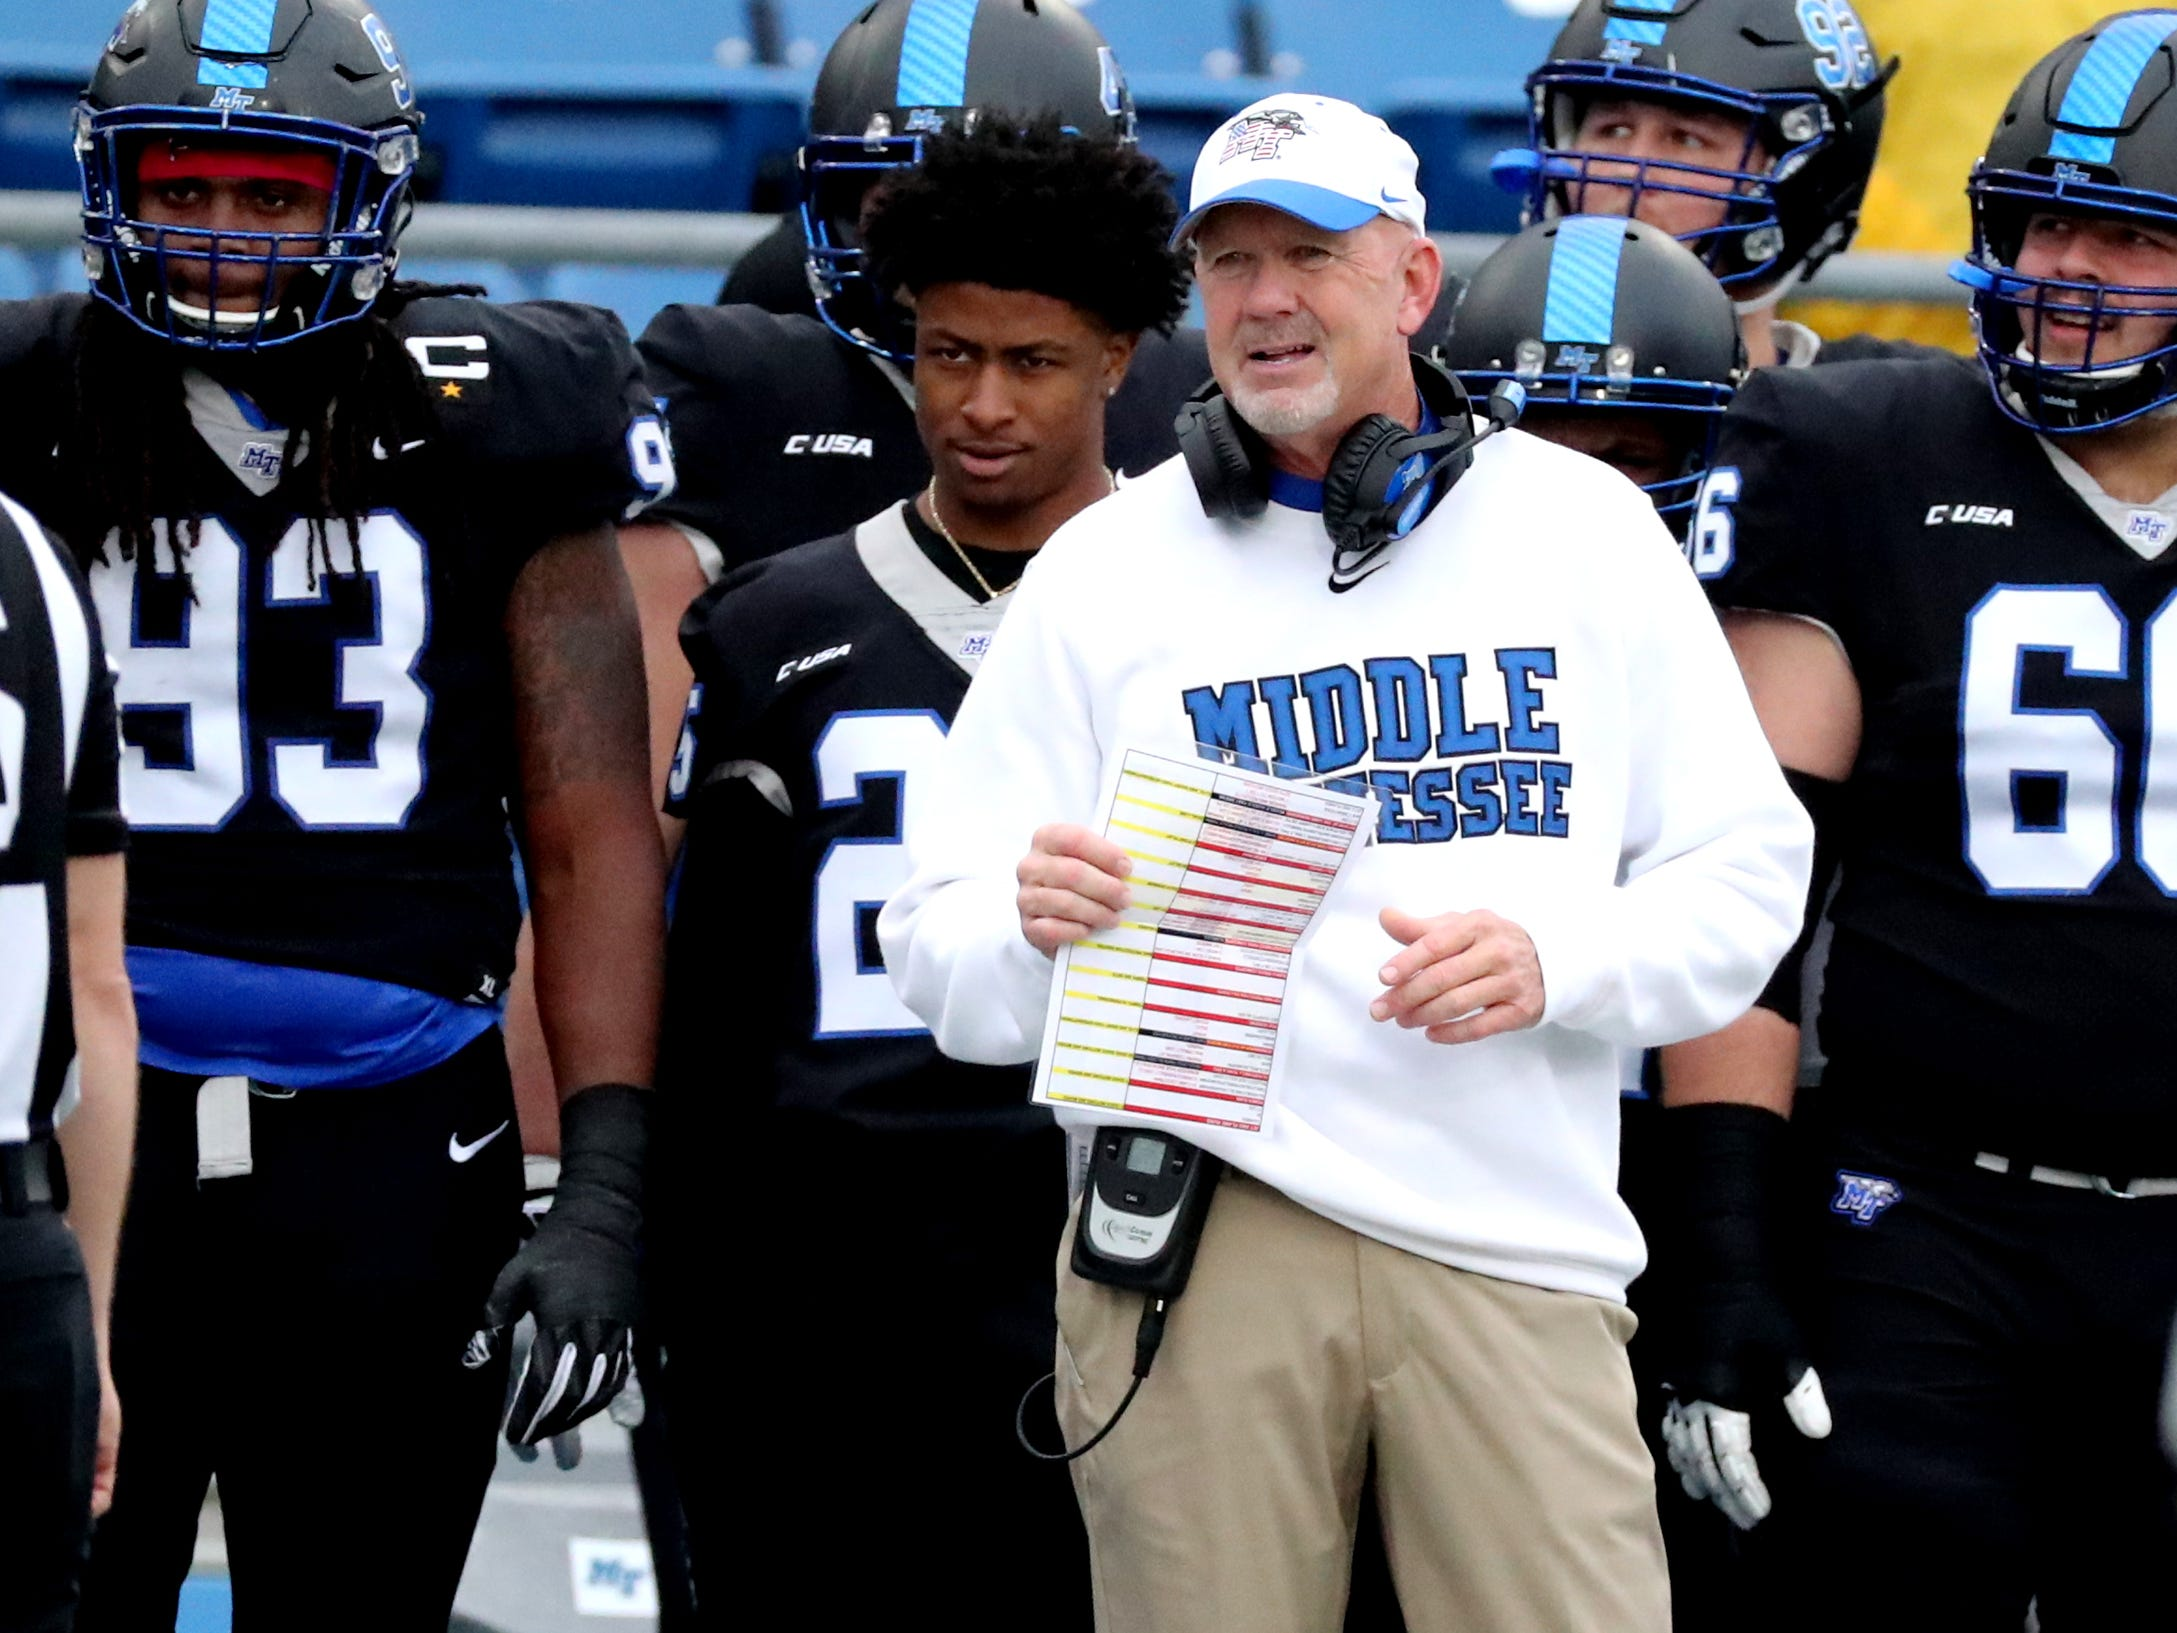 MTSU's head coach Rick Stockstill on the sidelines during the Conference USA Championship game against UAB at MTSU on Saturday, Dec. 1, 2018.